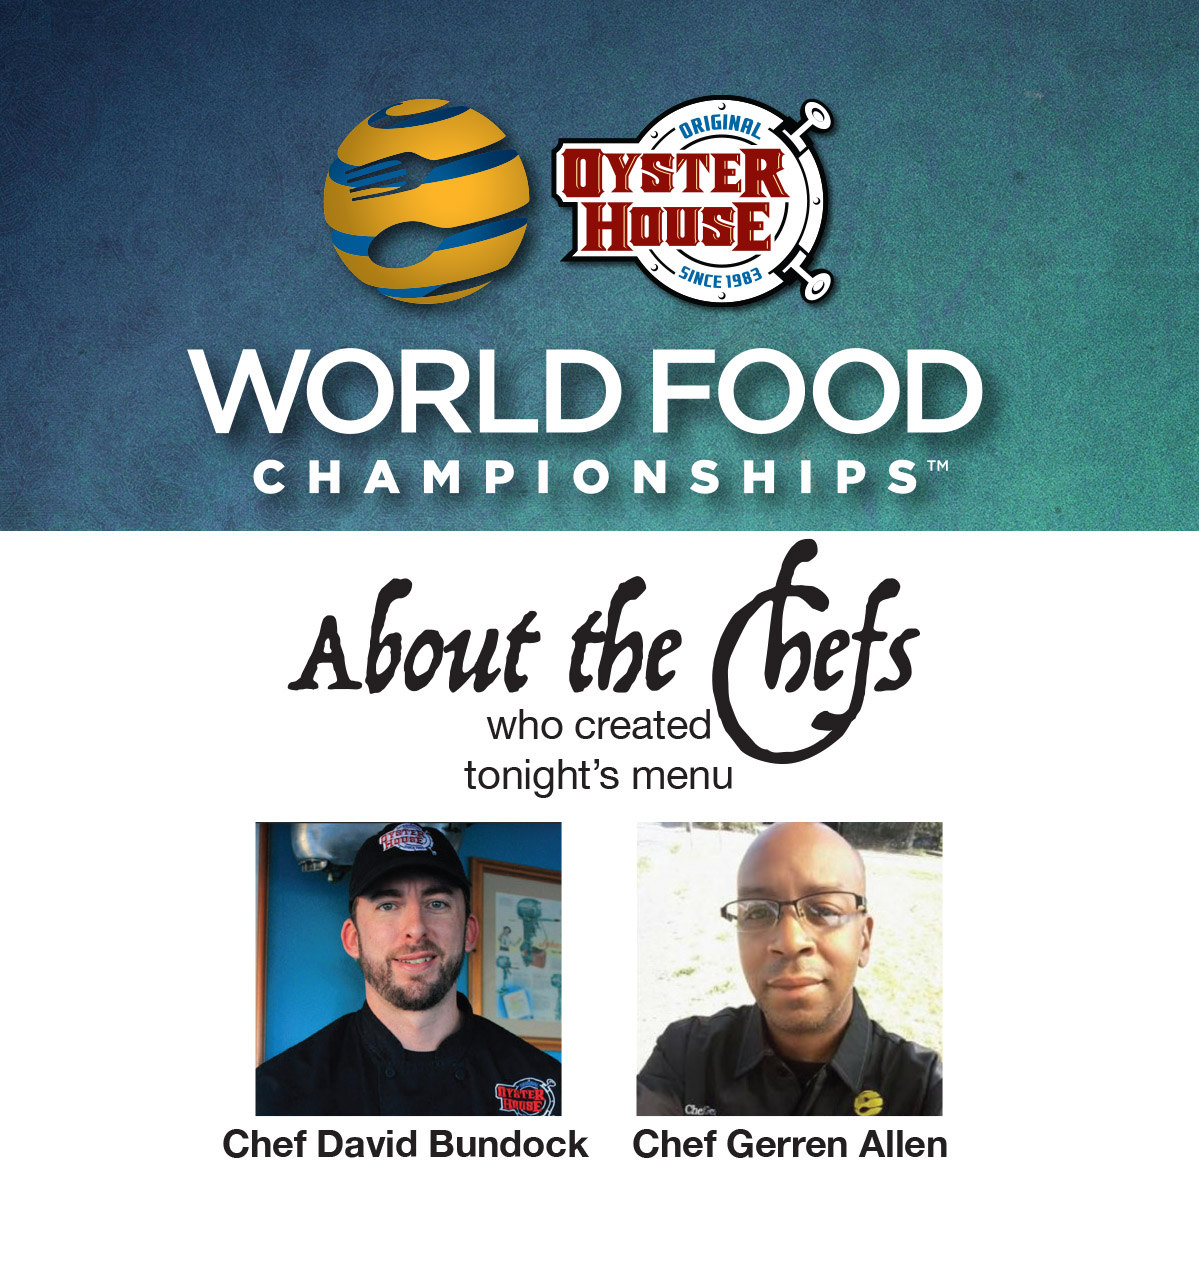 World Food Championships poster